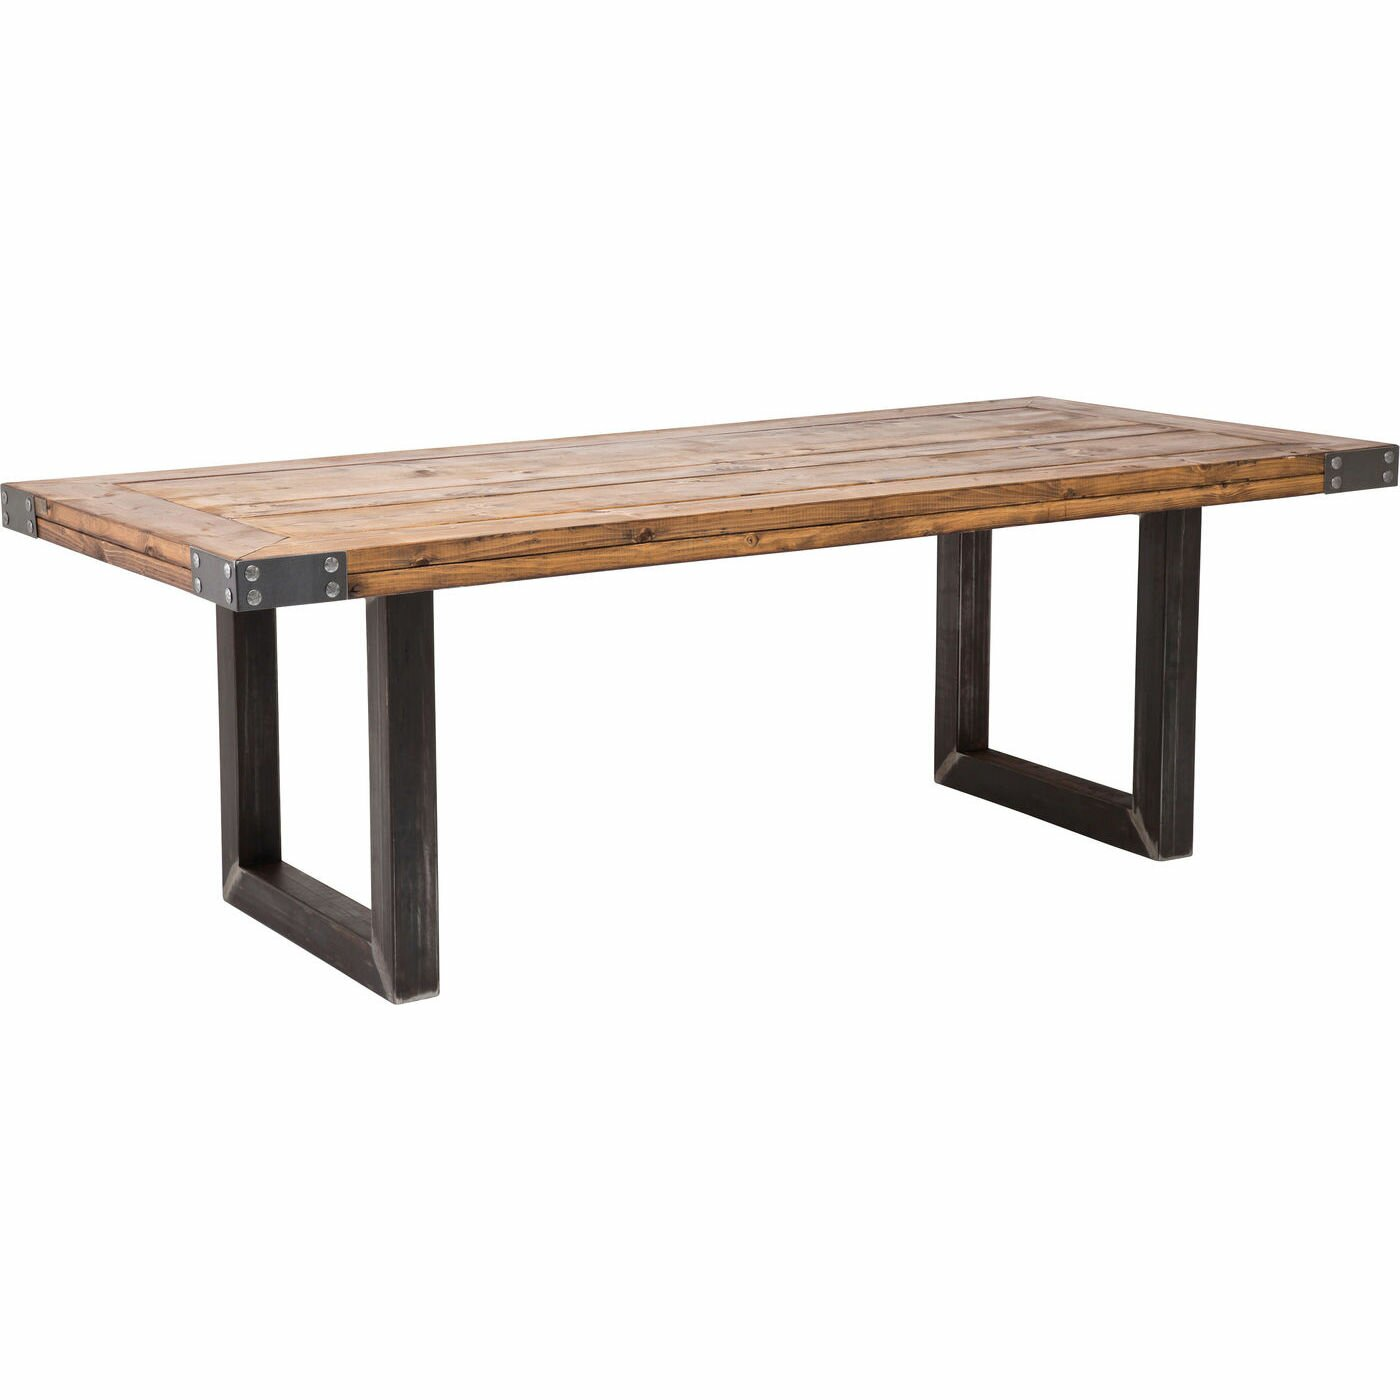 Kare design off road dining table wayfair uk - Table kare design ...